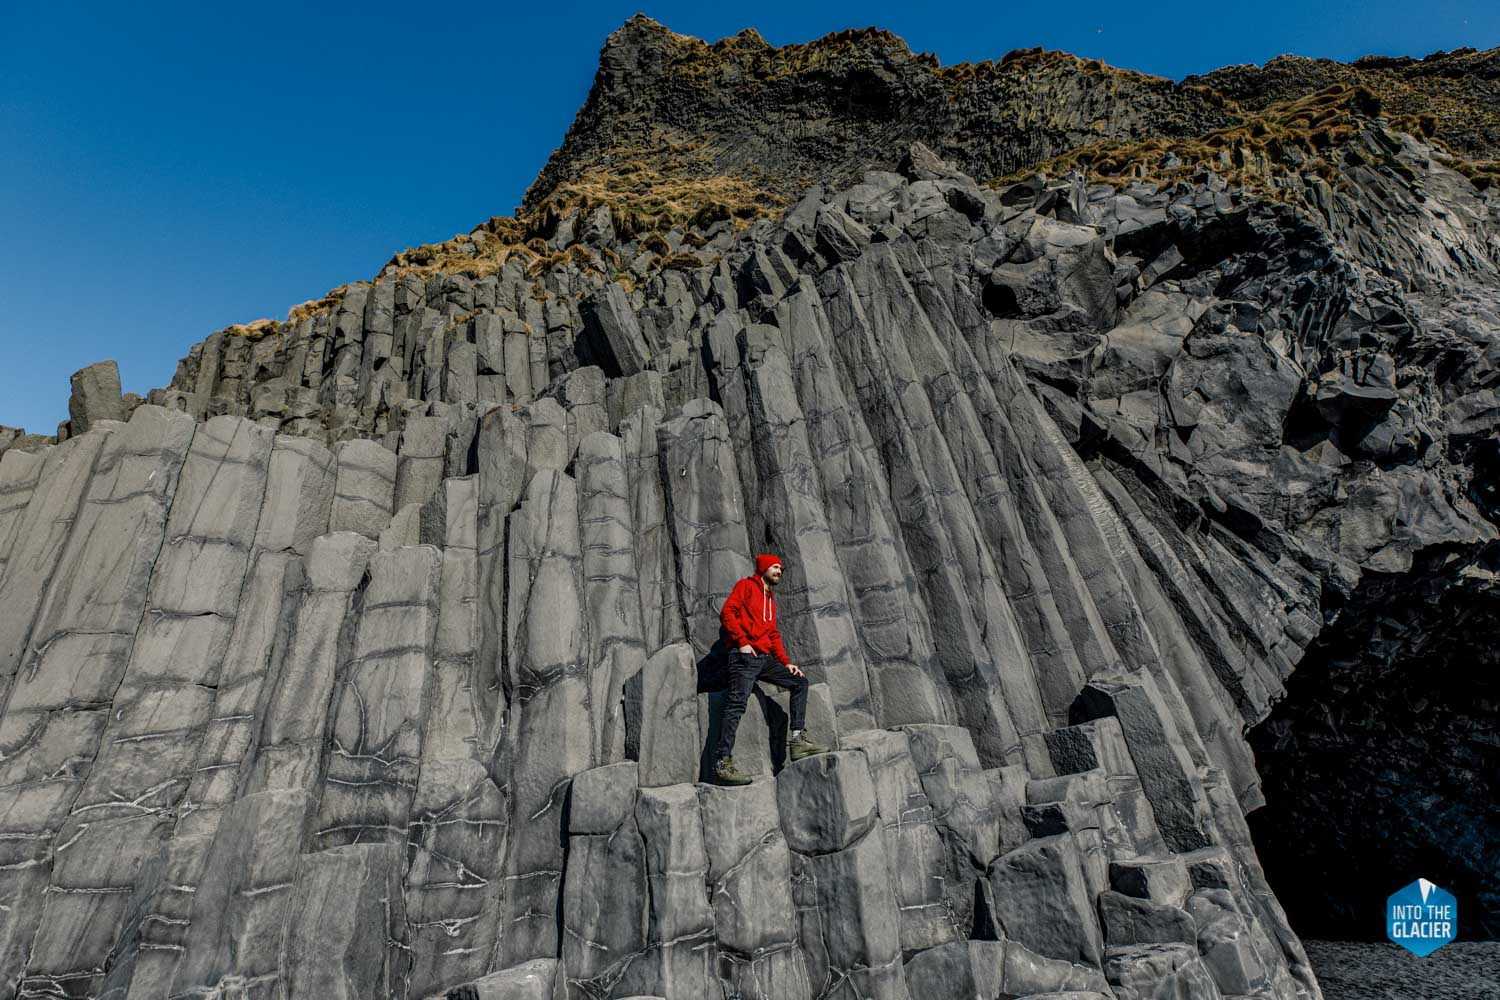 Traveler in red clothes climbed on basalt columns on Reynisfjara beach in Iceland